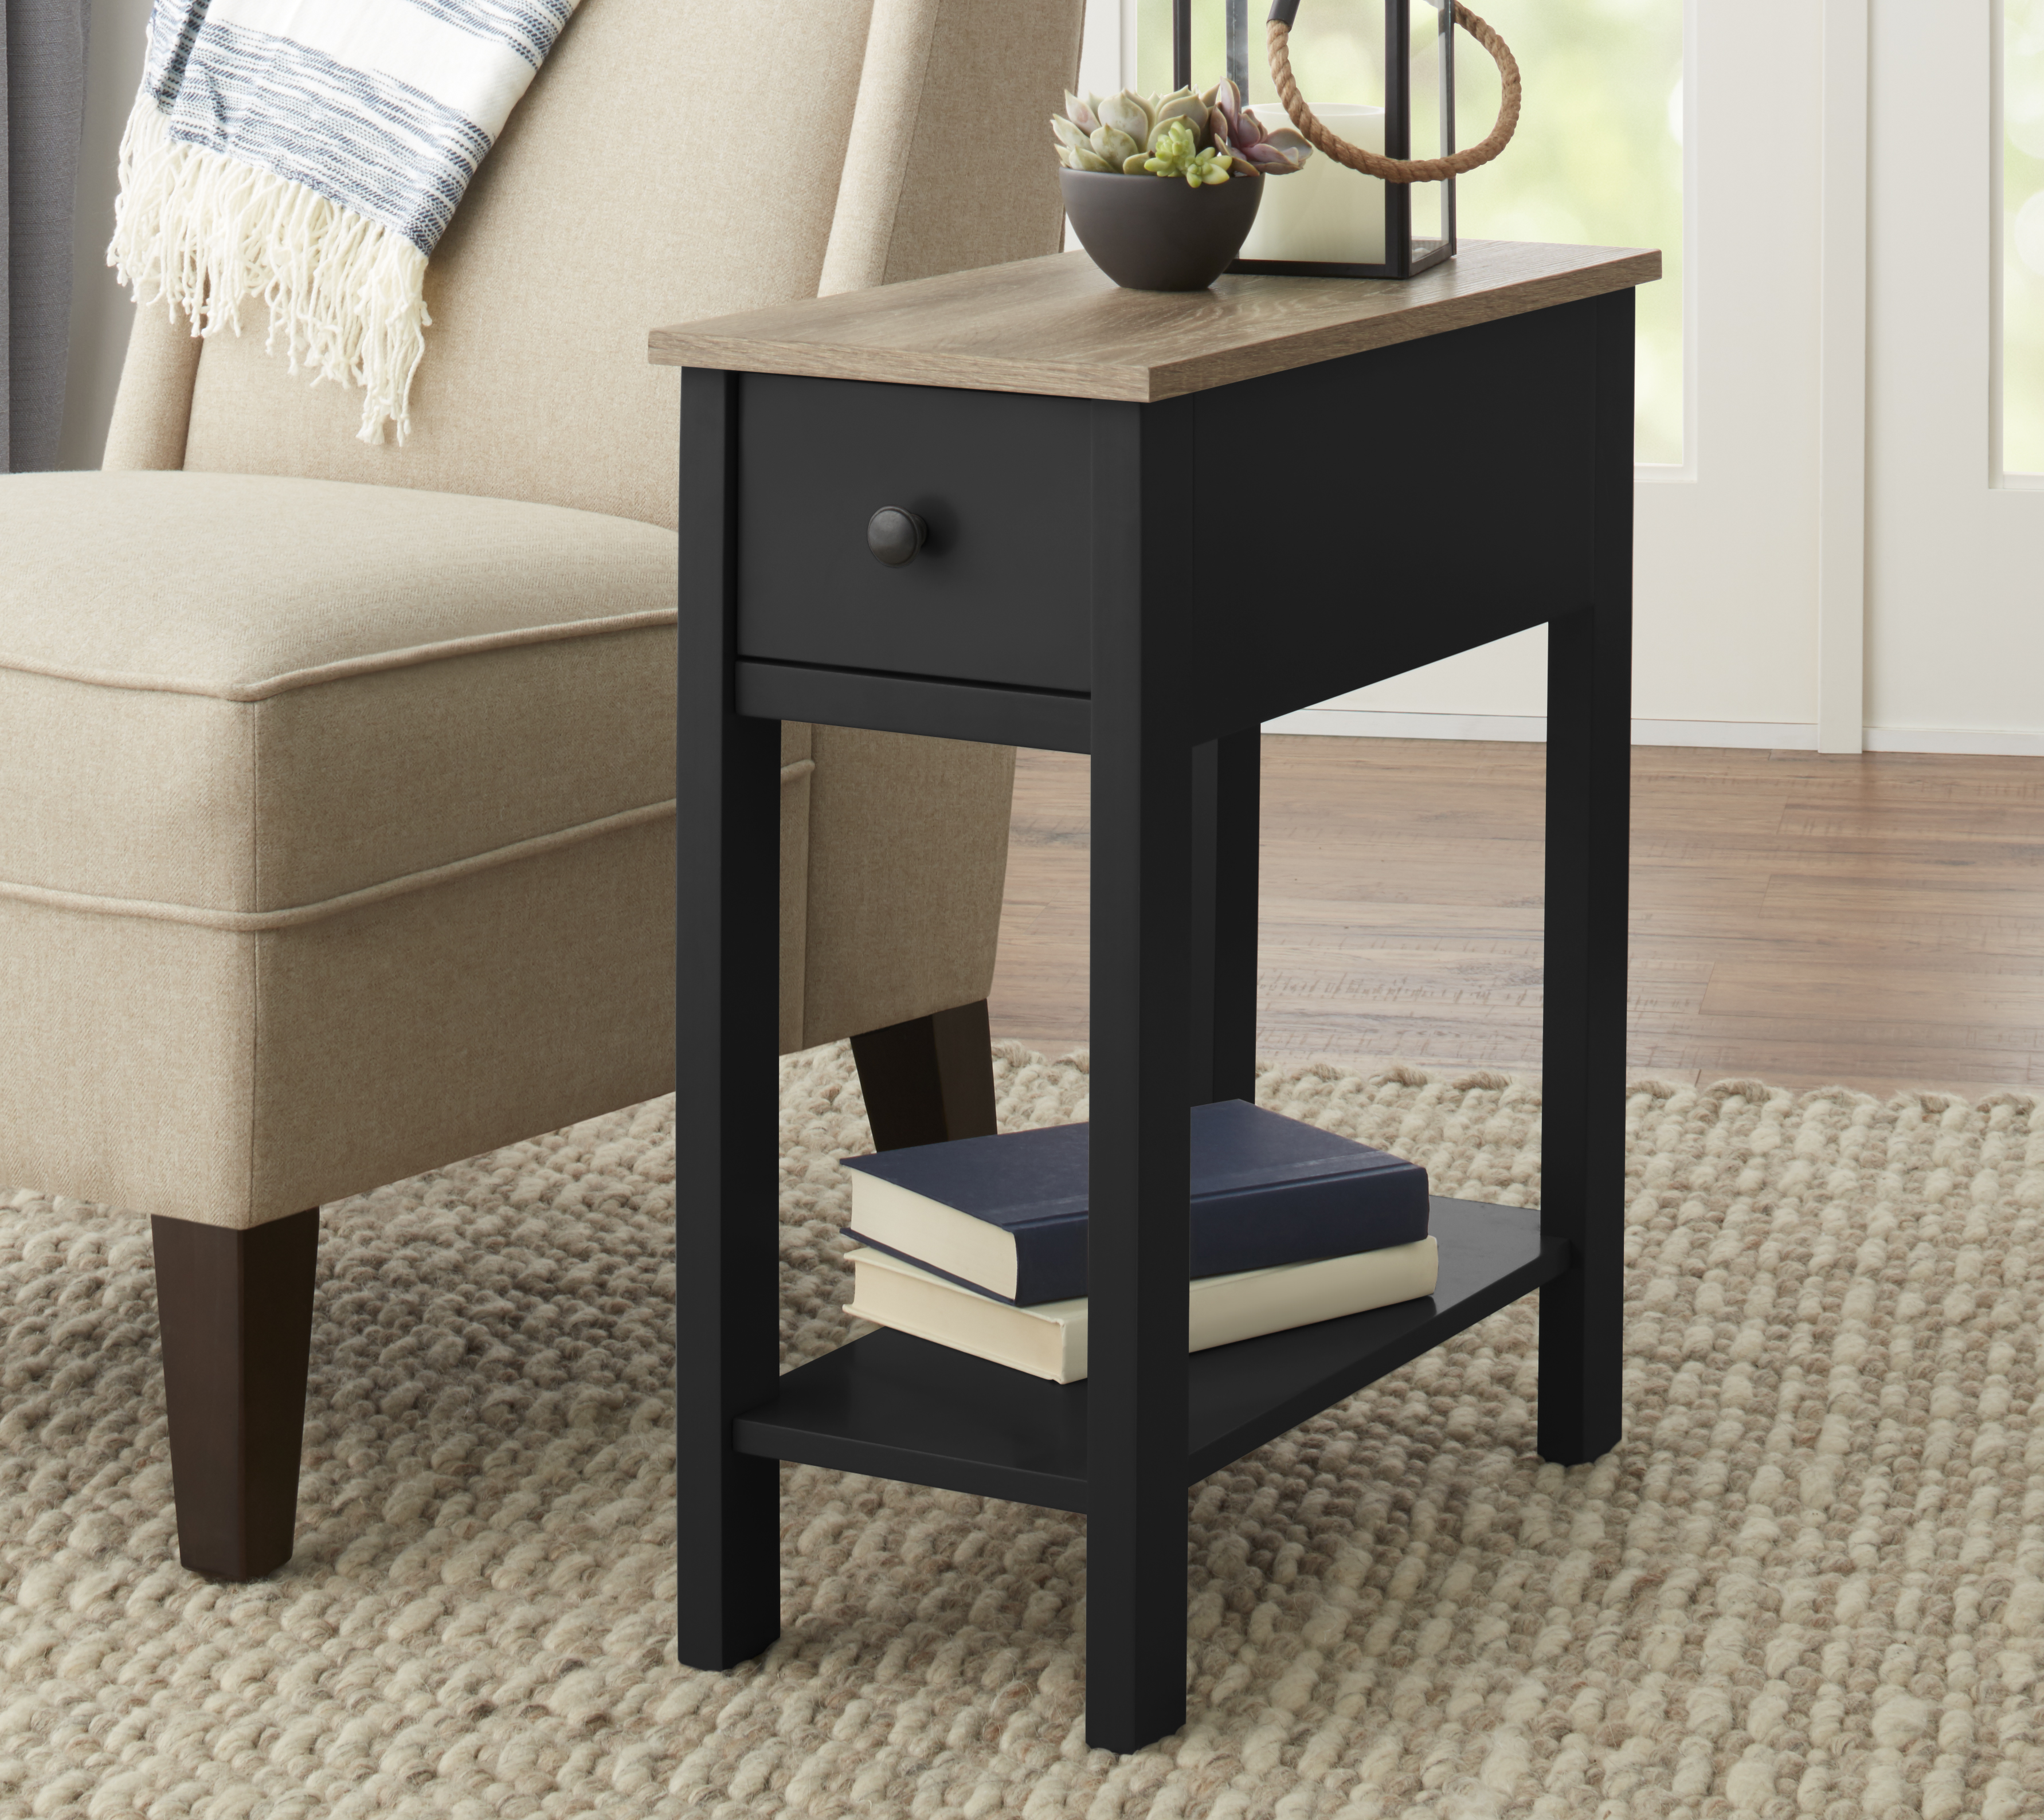 better homes and gardens laurel accent table room essentials instructions bedroom night tables ikea lounge storage half round end sheesham furniture pallet large trestle dining